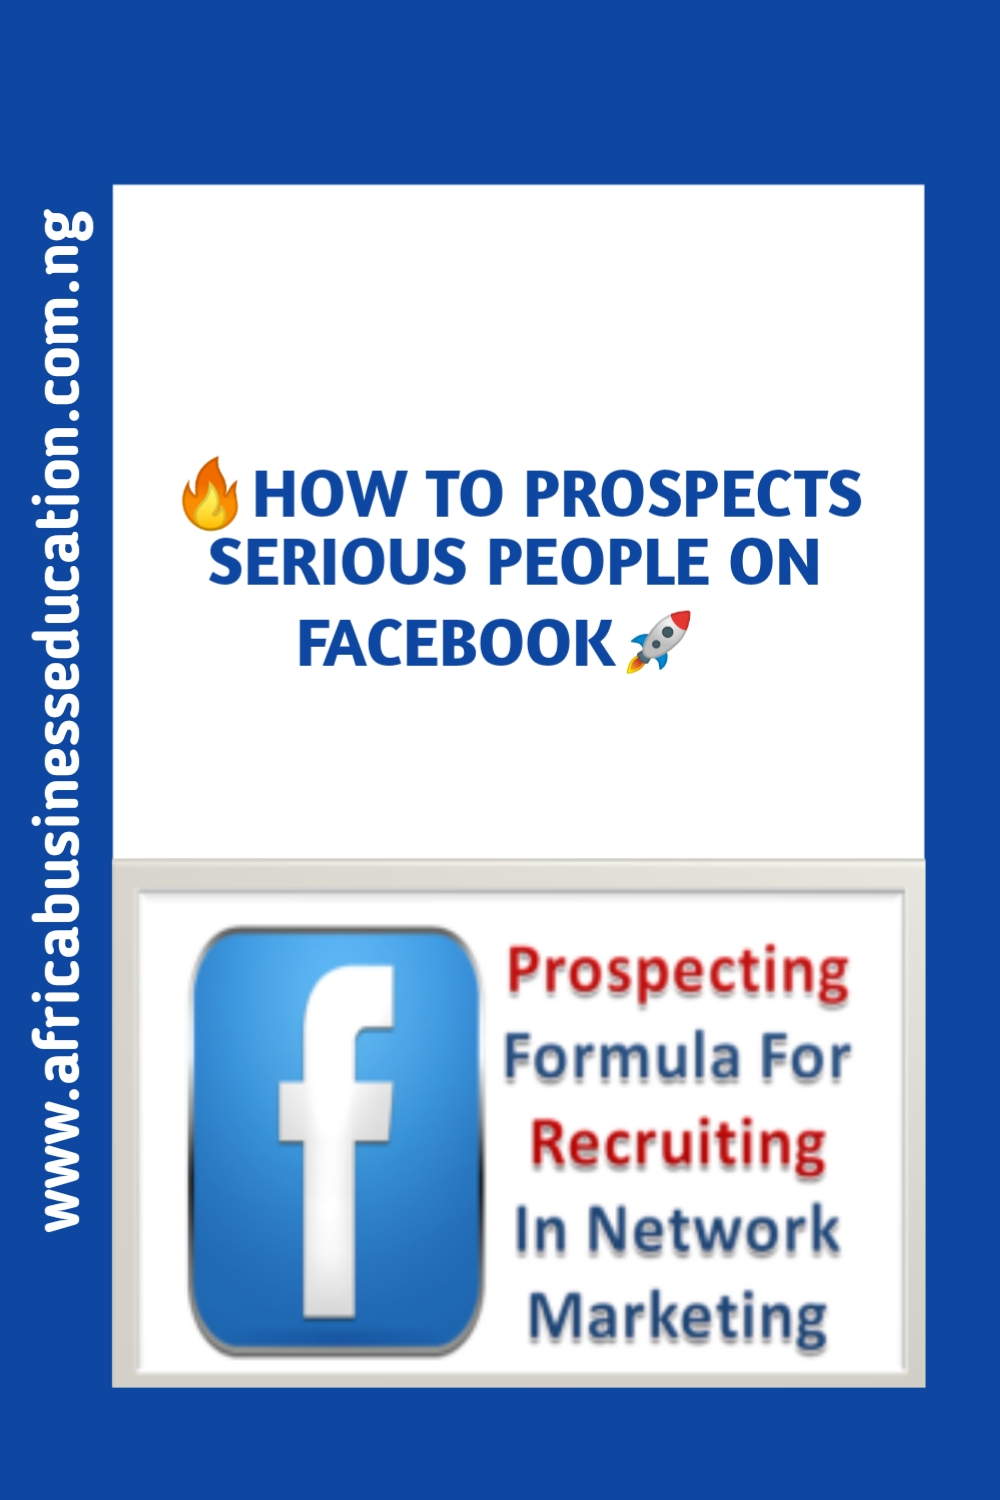 How to prospect for network marketing on facebook as a beginner